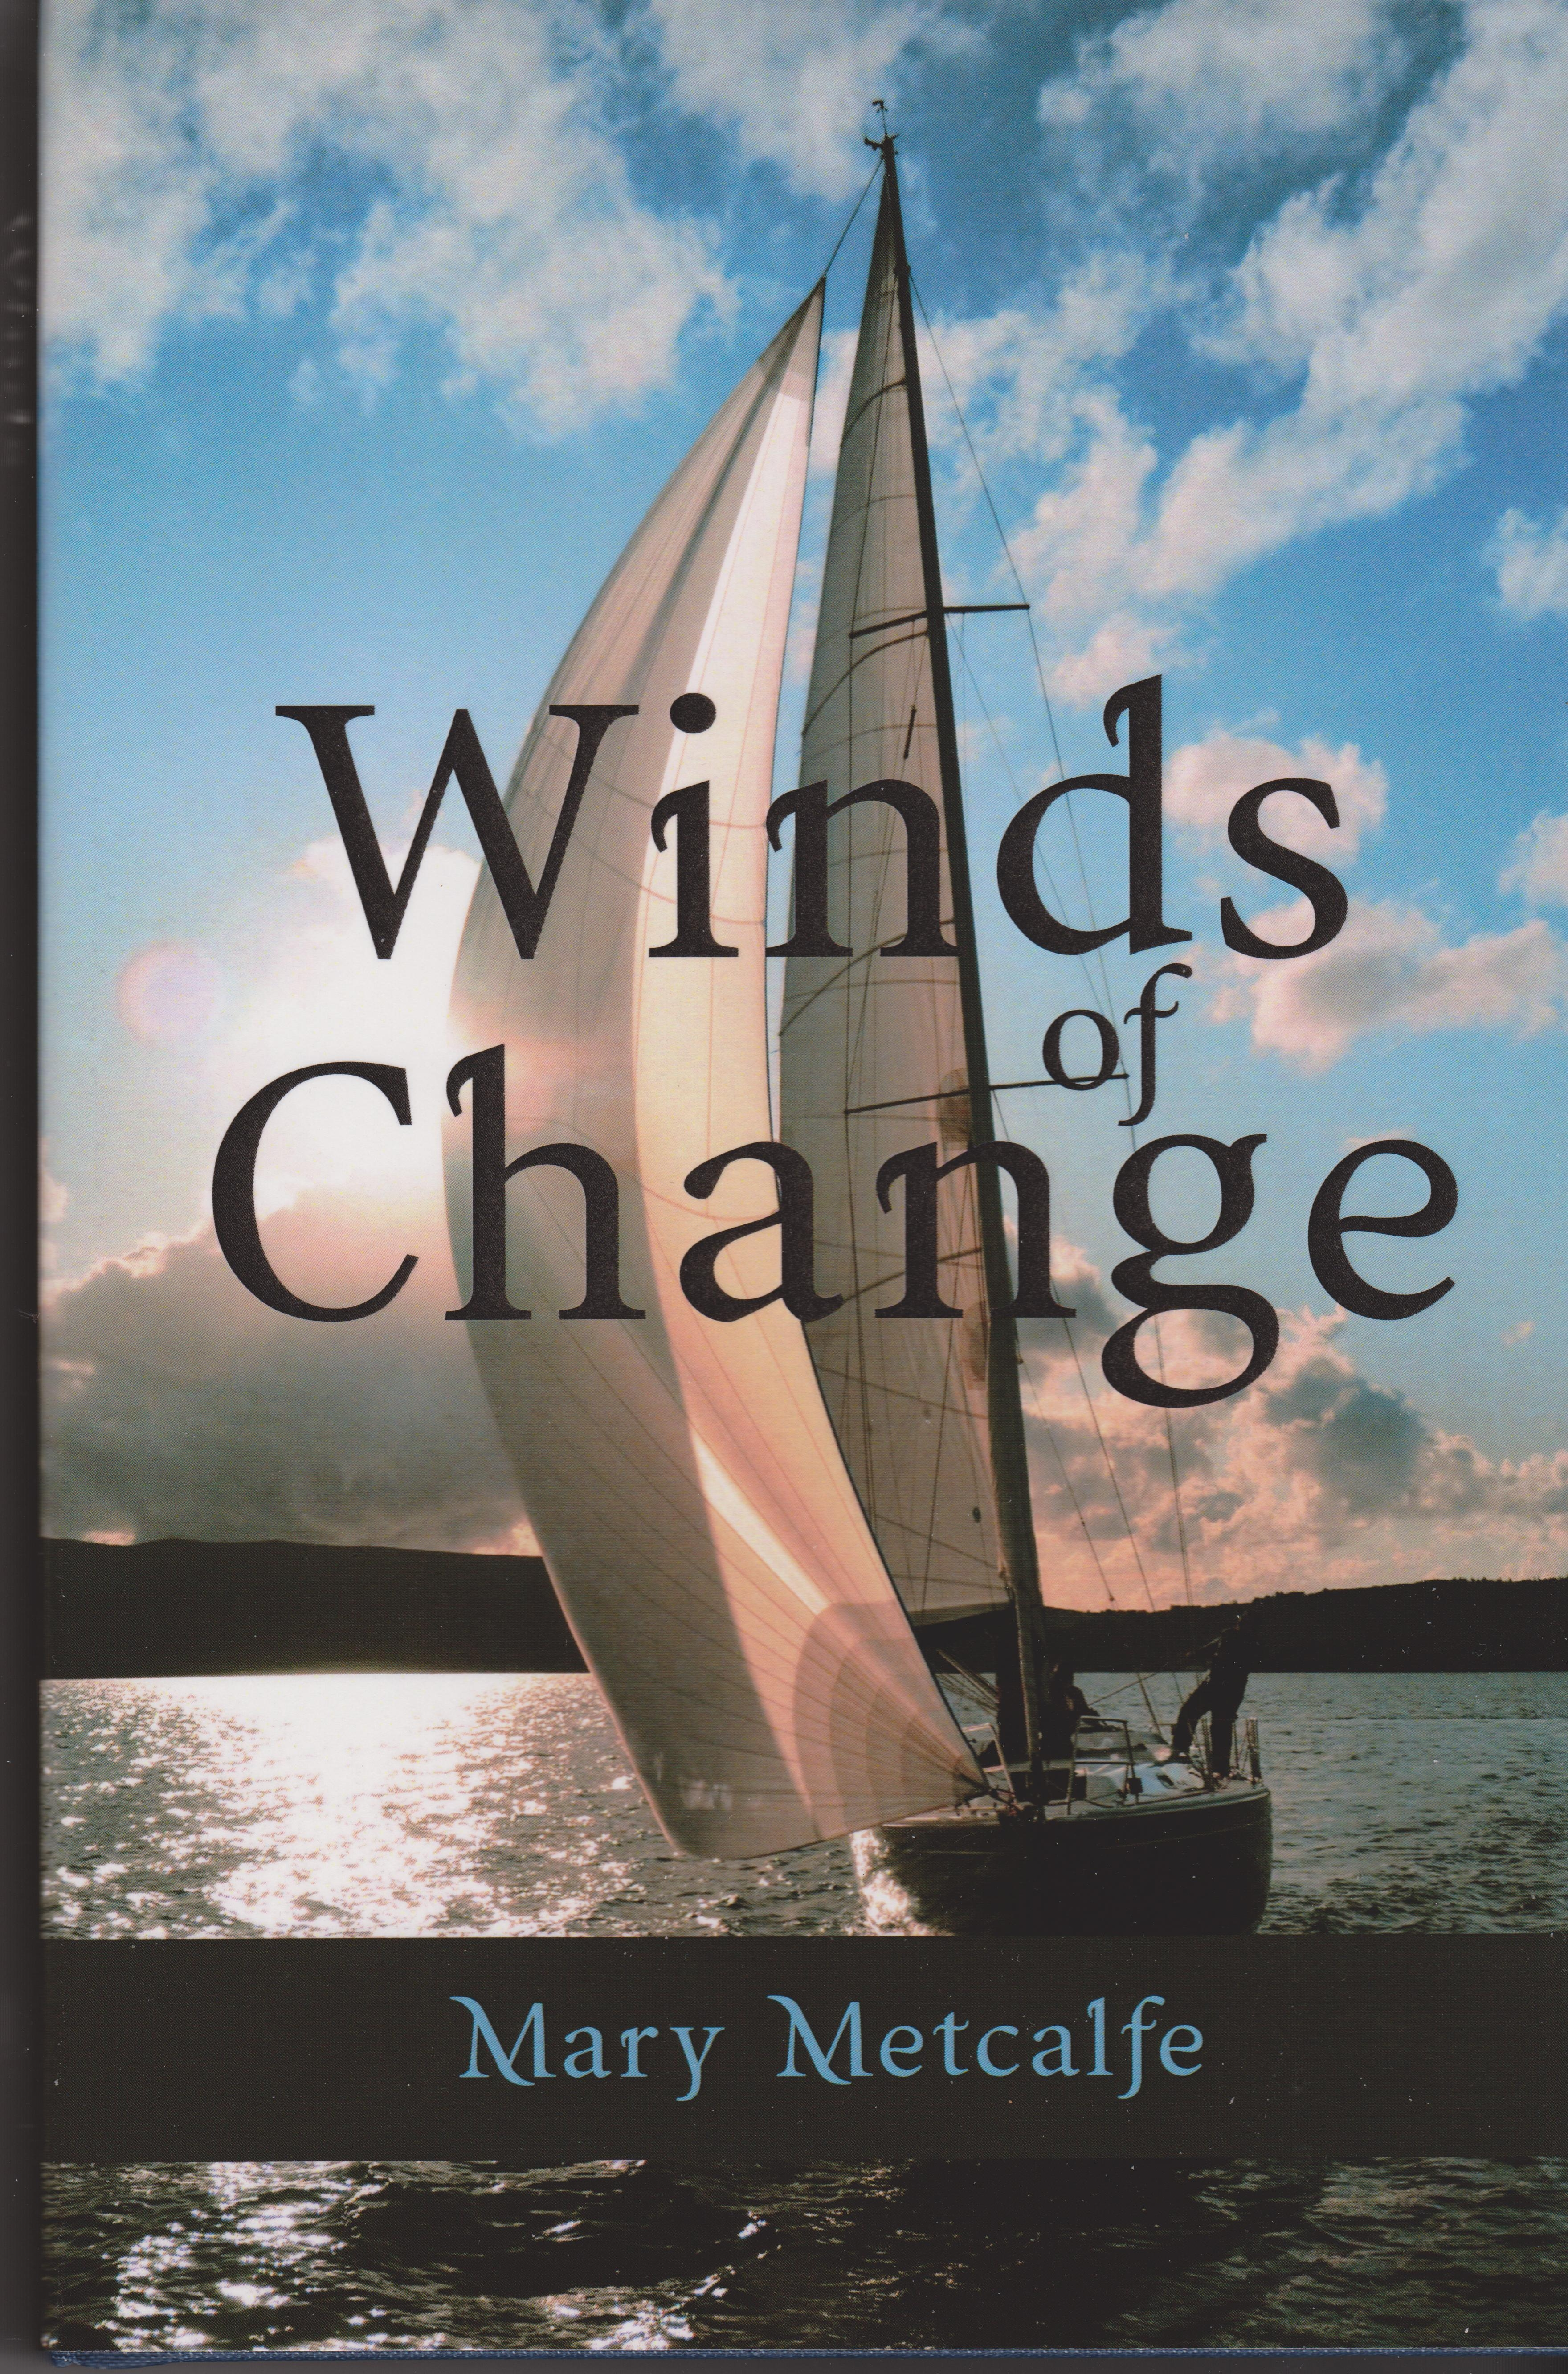 winds-of-change-high-res-cover-efa8dfc4b0e0ab6d671e692dde7cfe2fded8d3a7